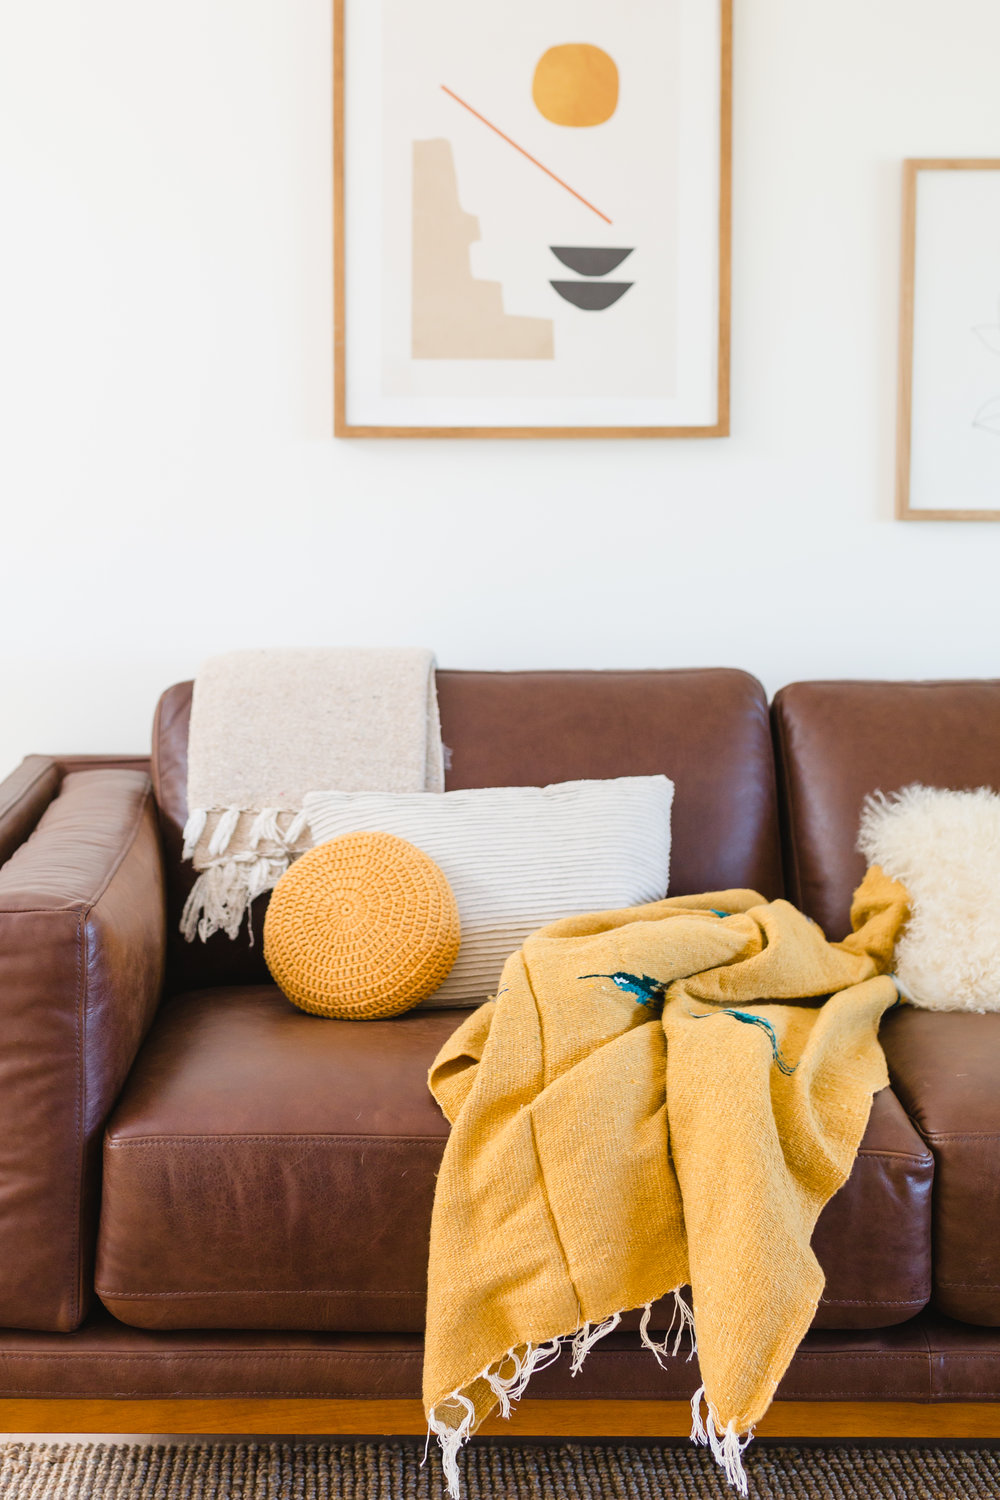 1. Couch Update - Add a new pillow or throw blanket to change the styling of your couch for an easy way to add a fresh new look.